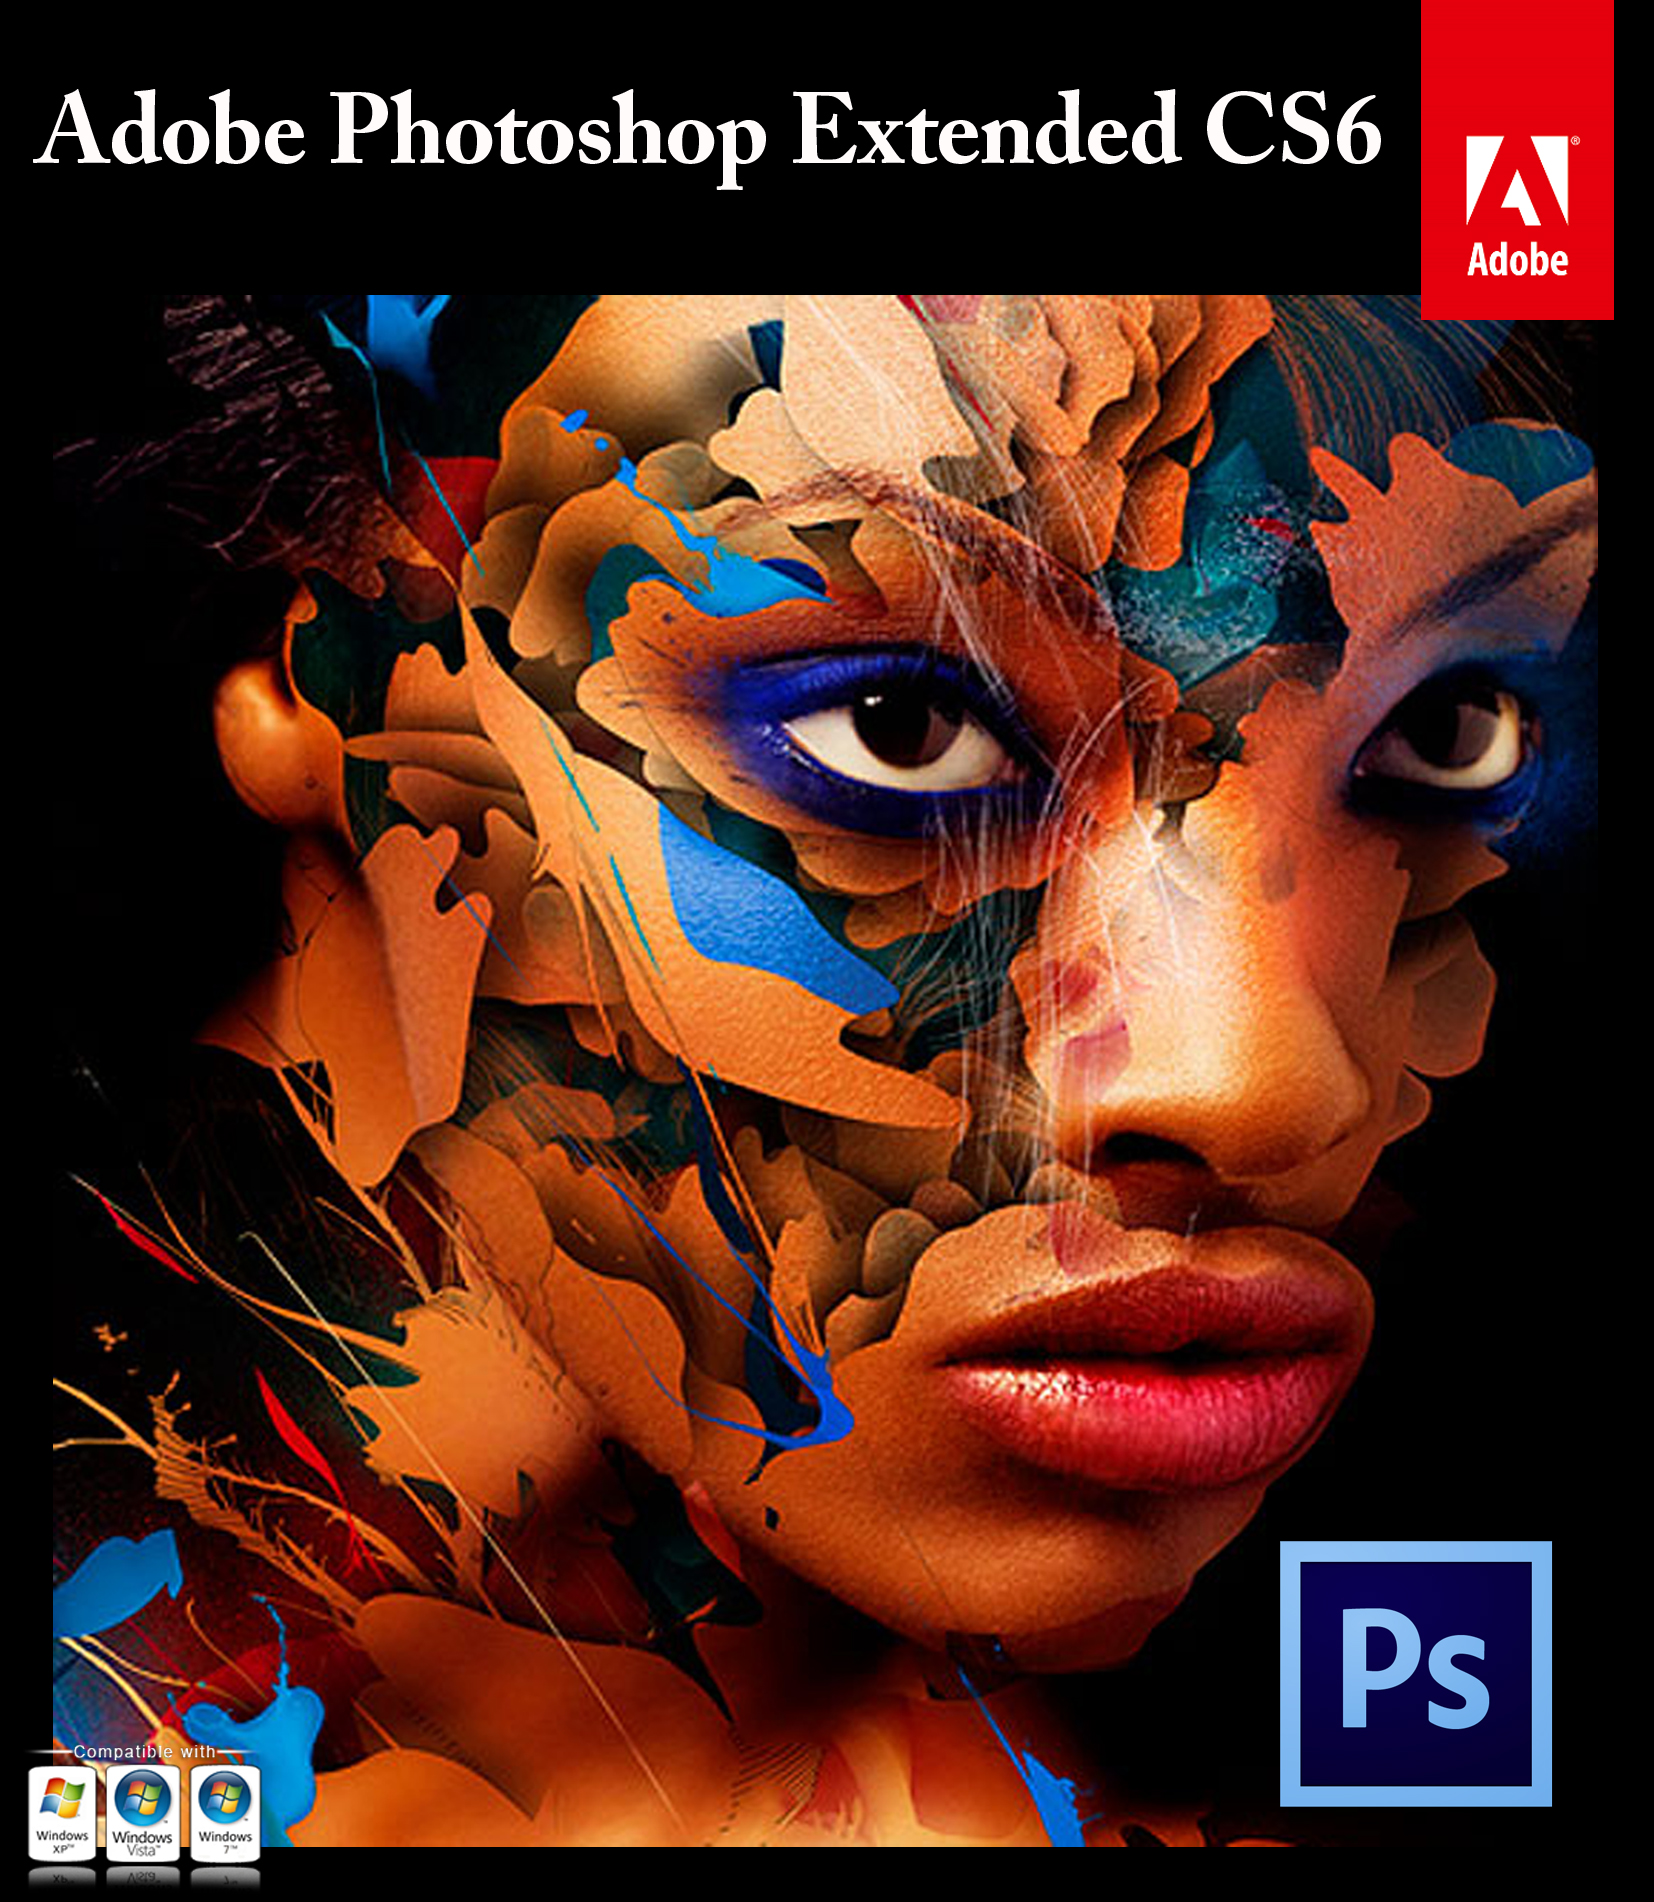 13 Adobe Photoshop CS6 Cover Images